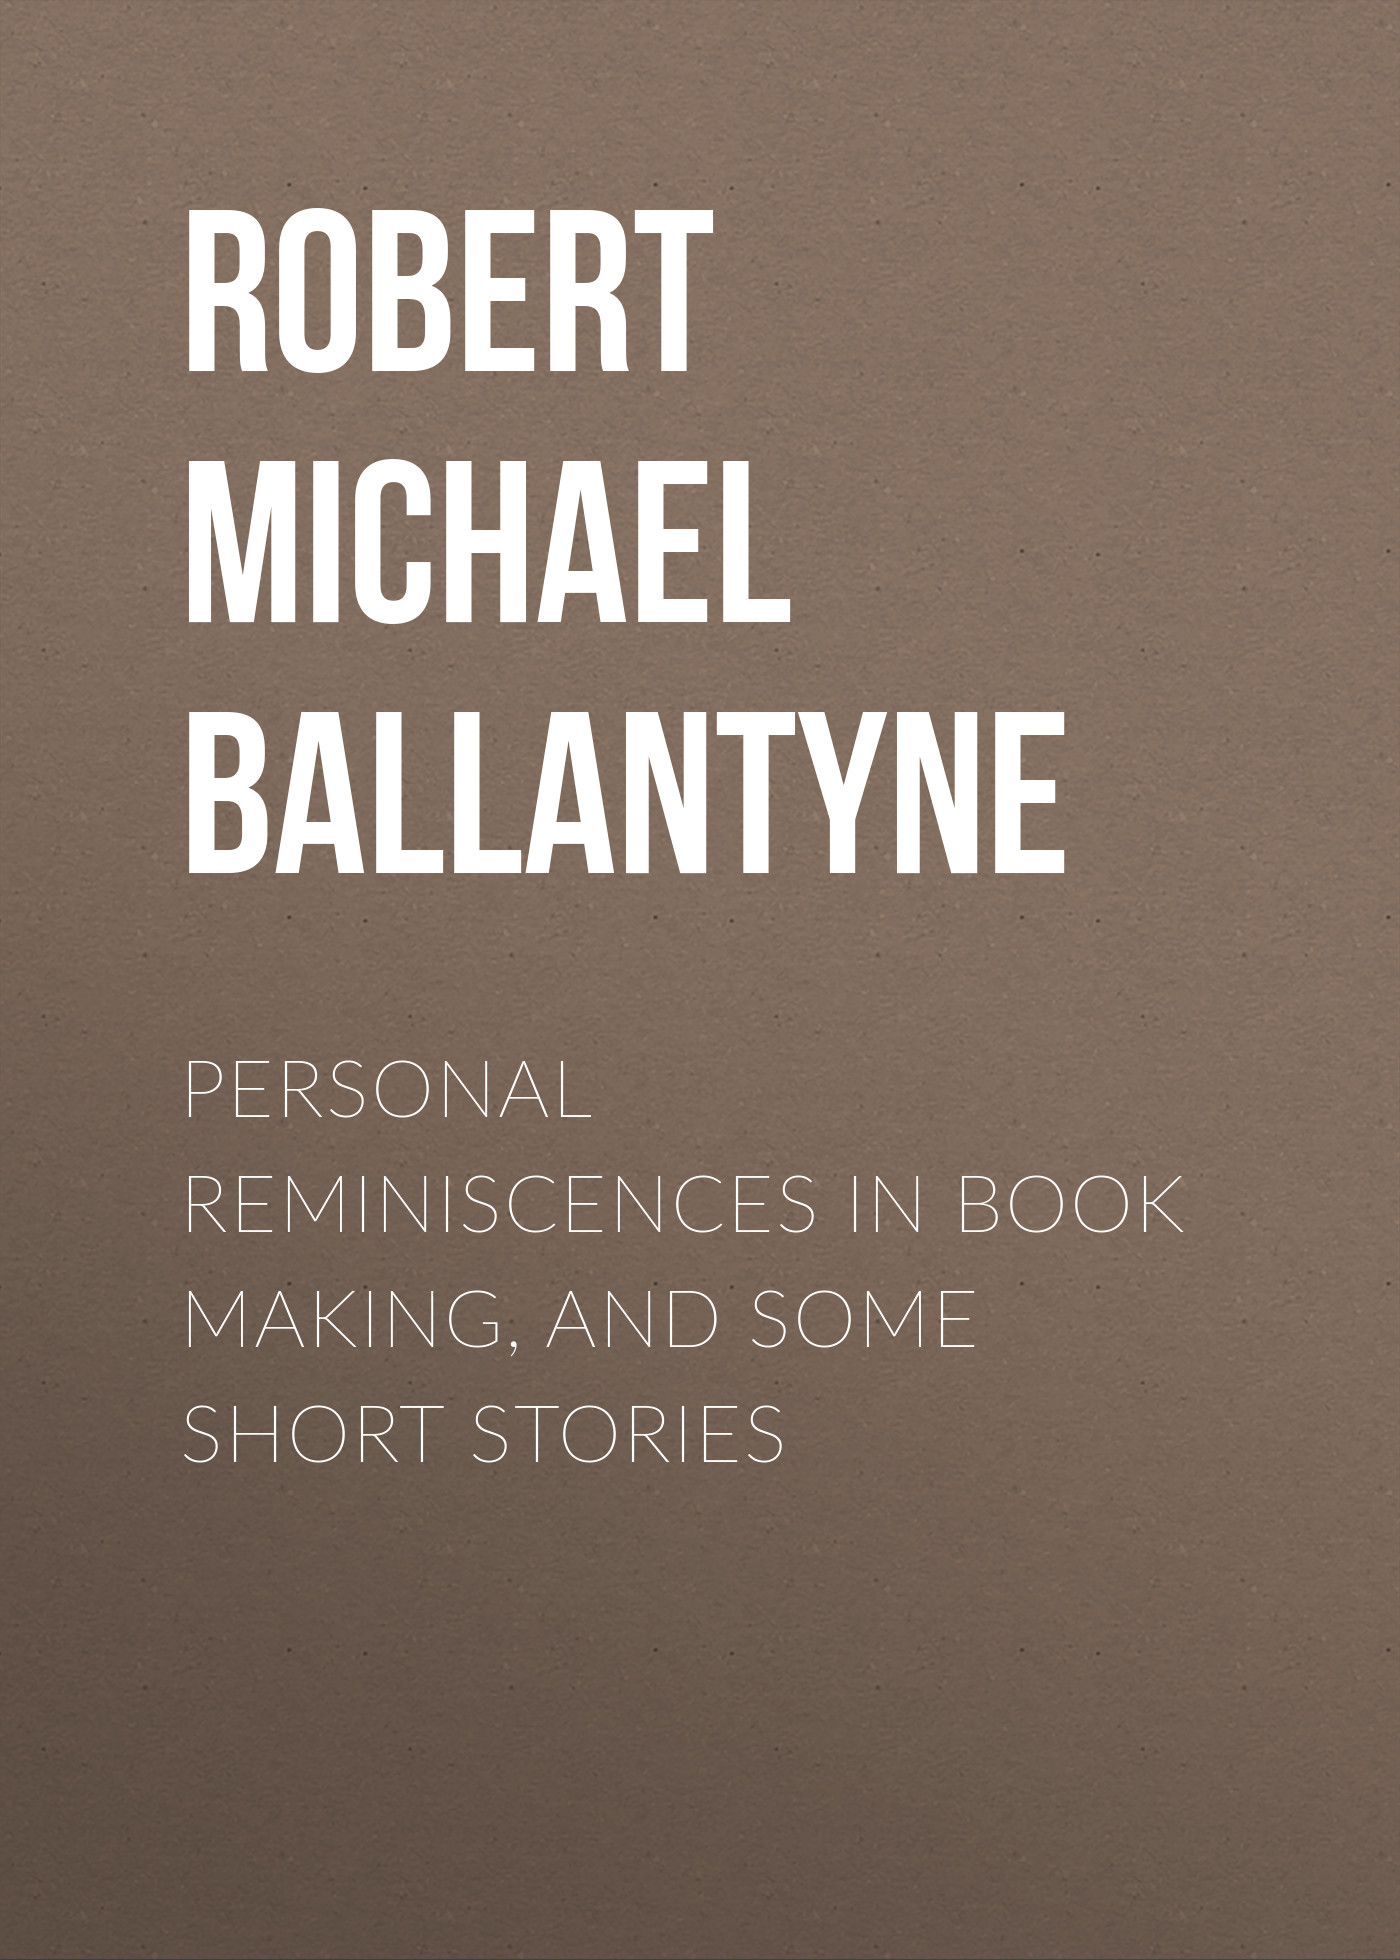 Robert Michael Ballantyne Personal Reminiscences in Book Making, and Some Short Stories